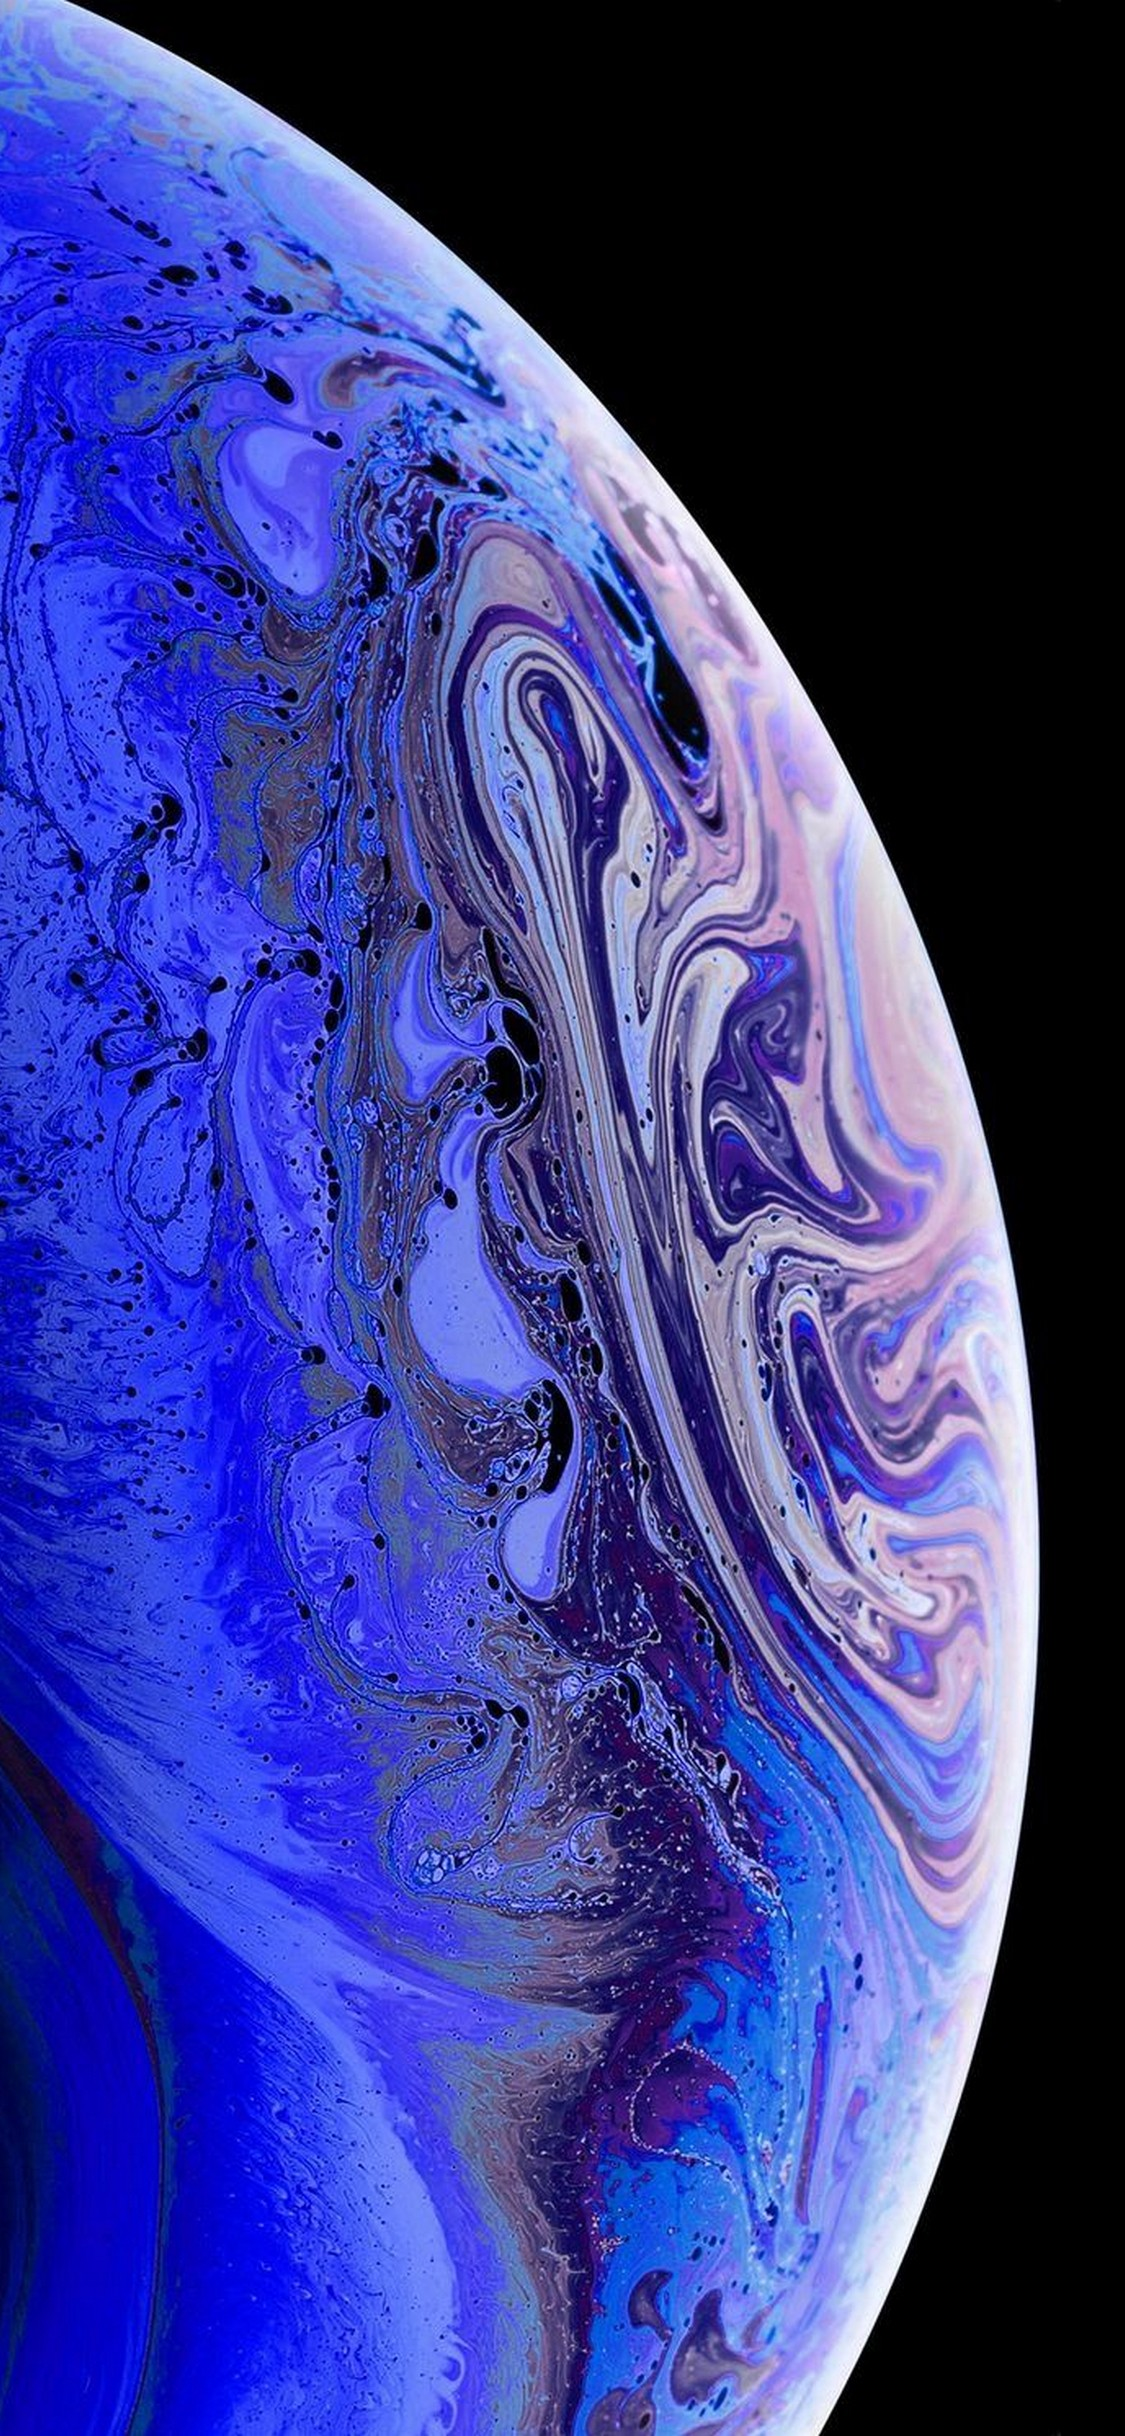 Apple iPhone XS Wallpaper With high-resolution 1125X2436 pixel. You can set as wallpaper for Apple iPhone X, XS Max, XR, 8, 7, 6, SE, iPad. Enjoy and share your favorite HD wallpapers and background images